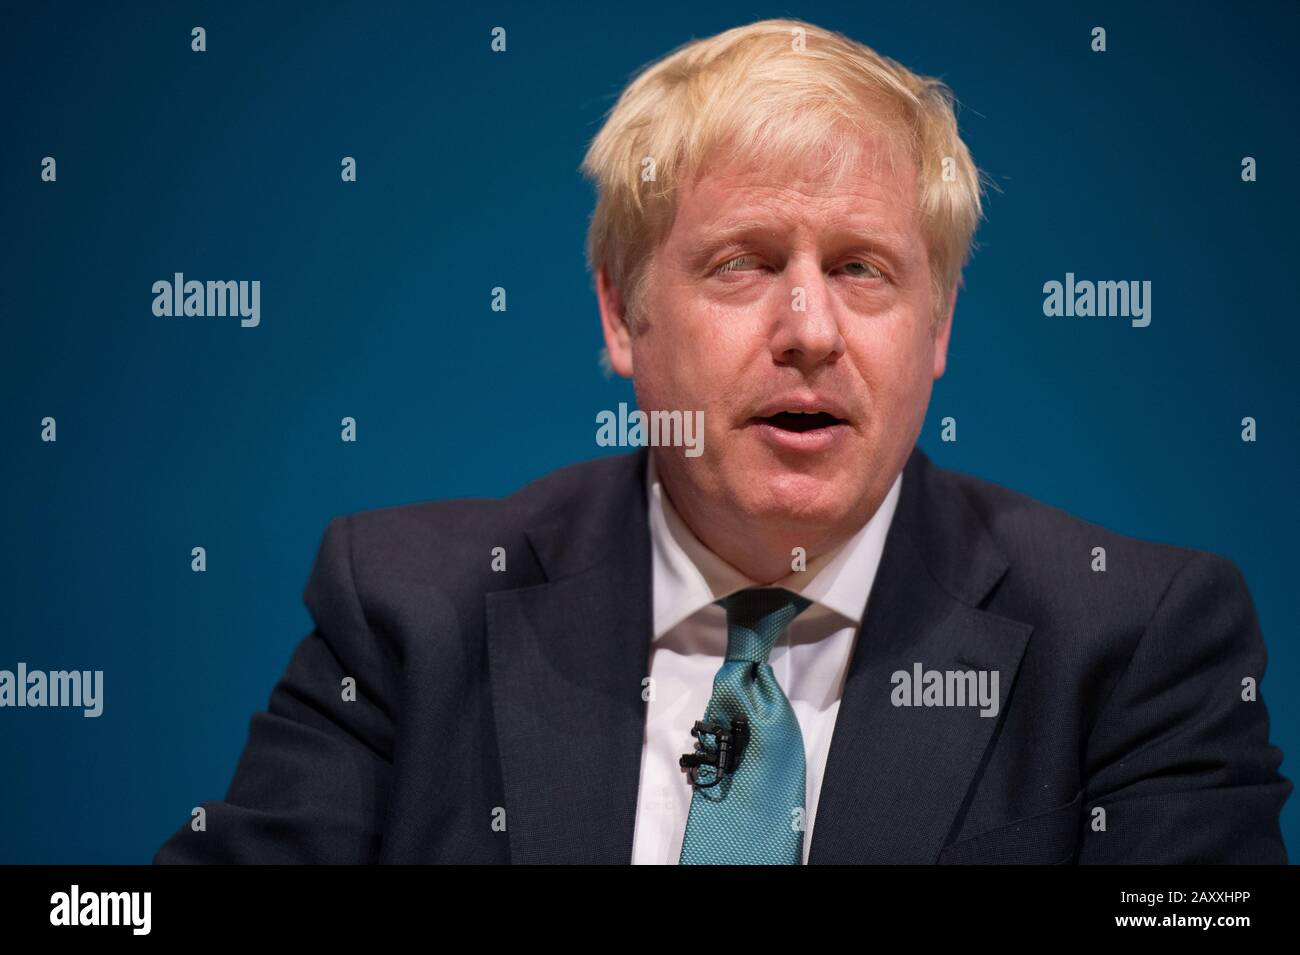 Perth, UK. 5 July 2019.  PICTURED: Boris Johnson MP Conservative leadership contenders Boris Johnson and Jeremy Hunt are to face Scottish party members at a hustings event in Perth.  The hustings in Perth is the latest in a series of events around the UK which see the two candidates make a speech to local members before taking questions from a host and the audience.  Party members should receive their ballots in the coming days, with the winner to be announced on 23 July. Stock Photo